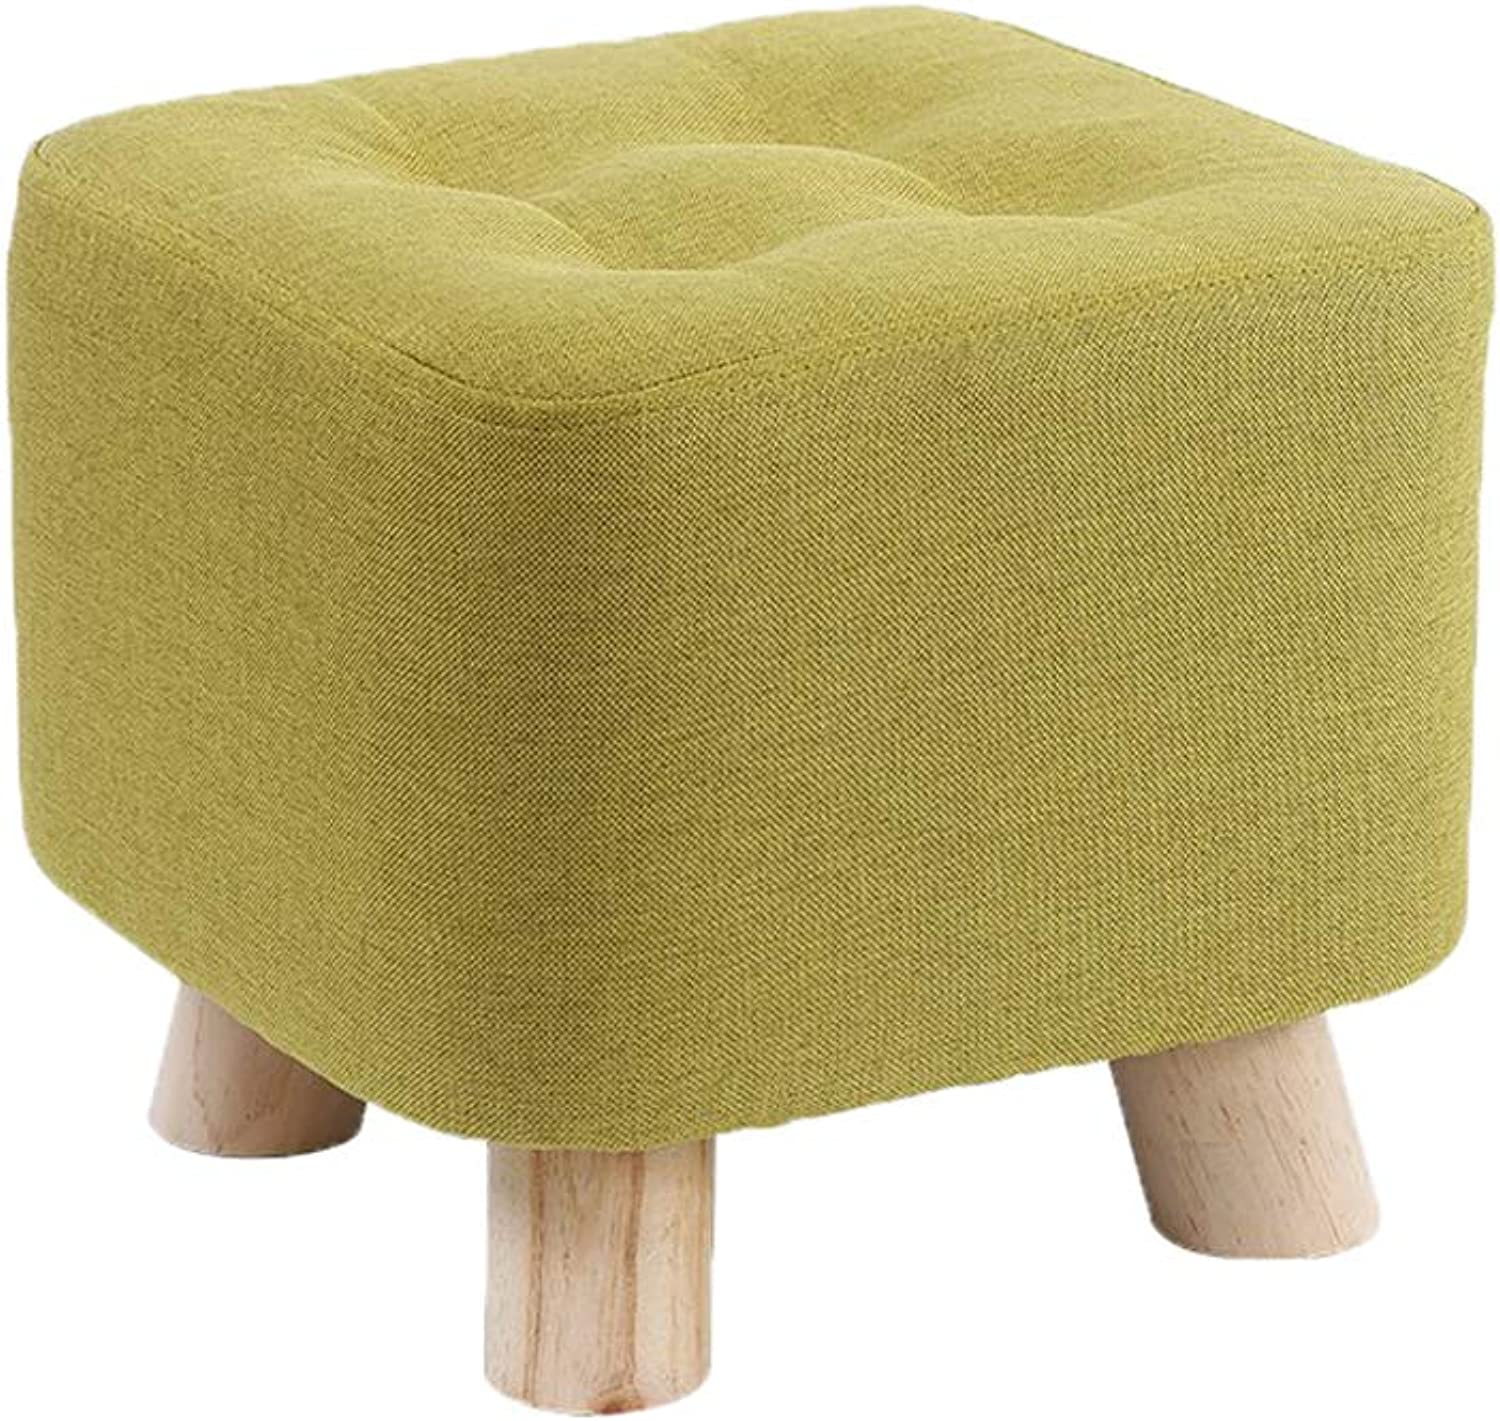 Upholstered Padded Stool Tea Table Mound Chair Footstool Fashion Home Sofa Square Stool, Linen Cotton (11×11×10 in, 4 Legs),Matcha